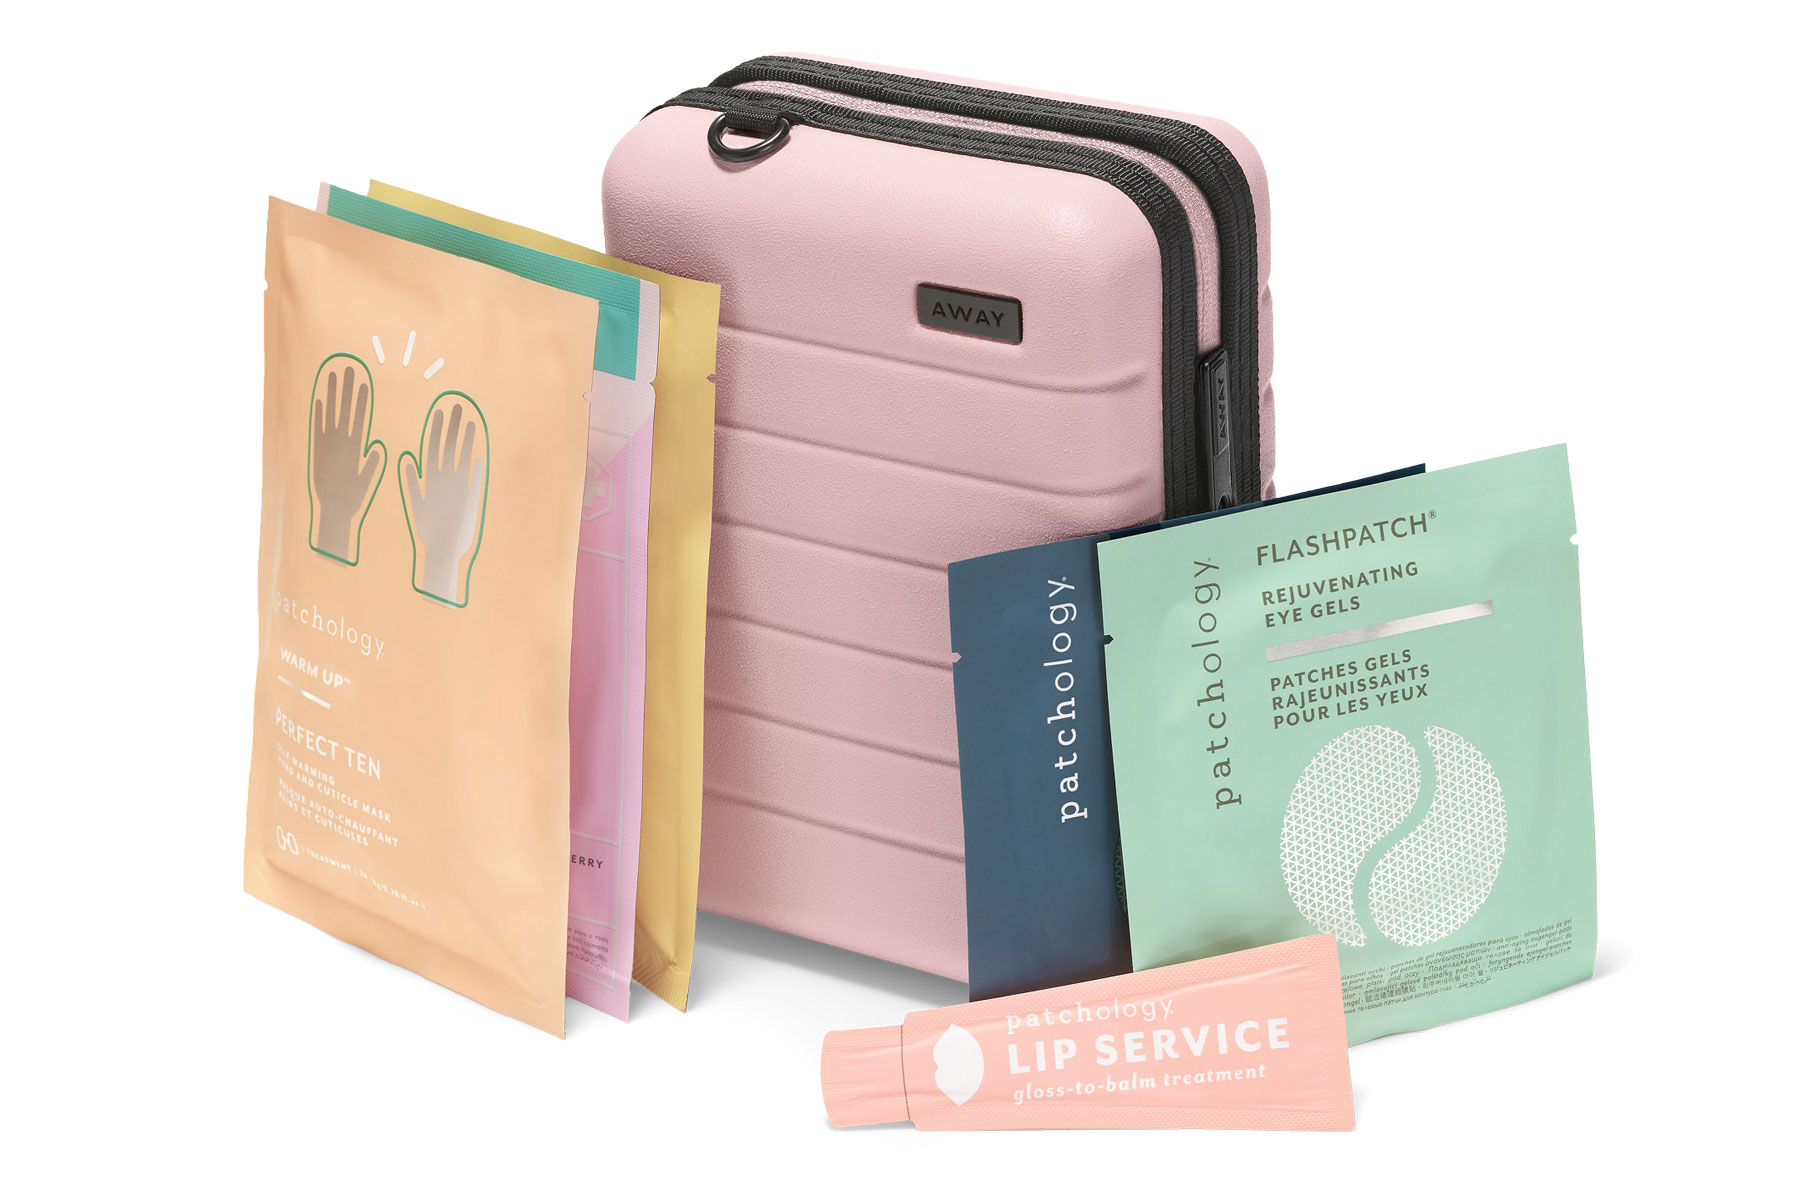 Away mini suitcase and skincare products